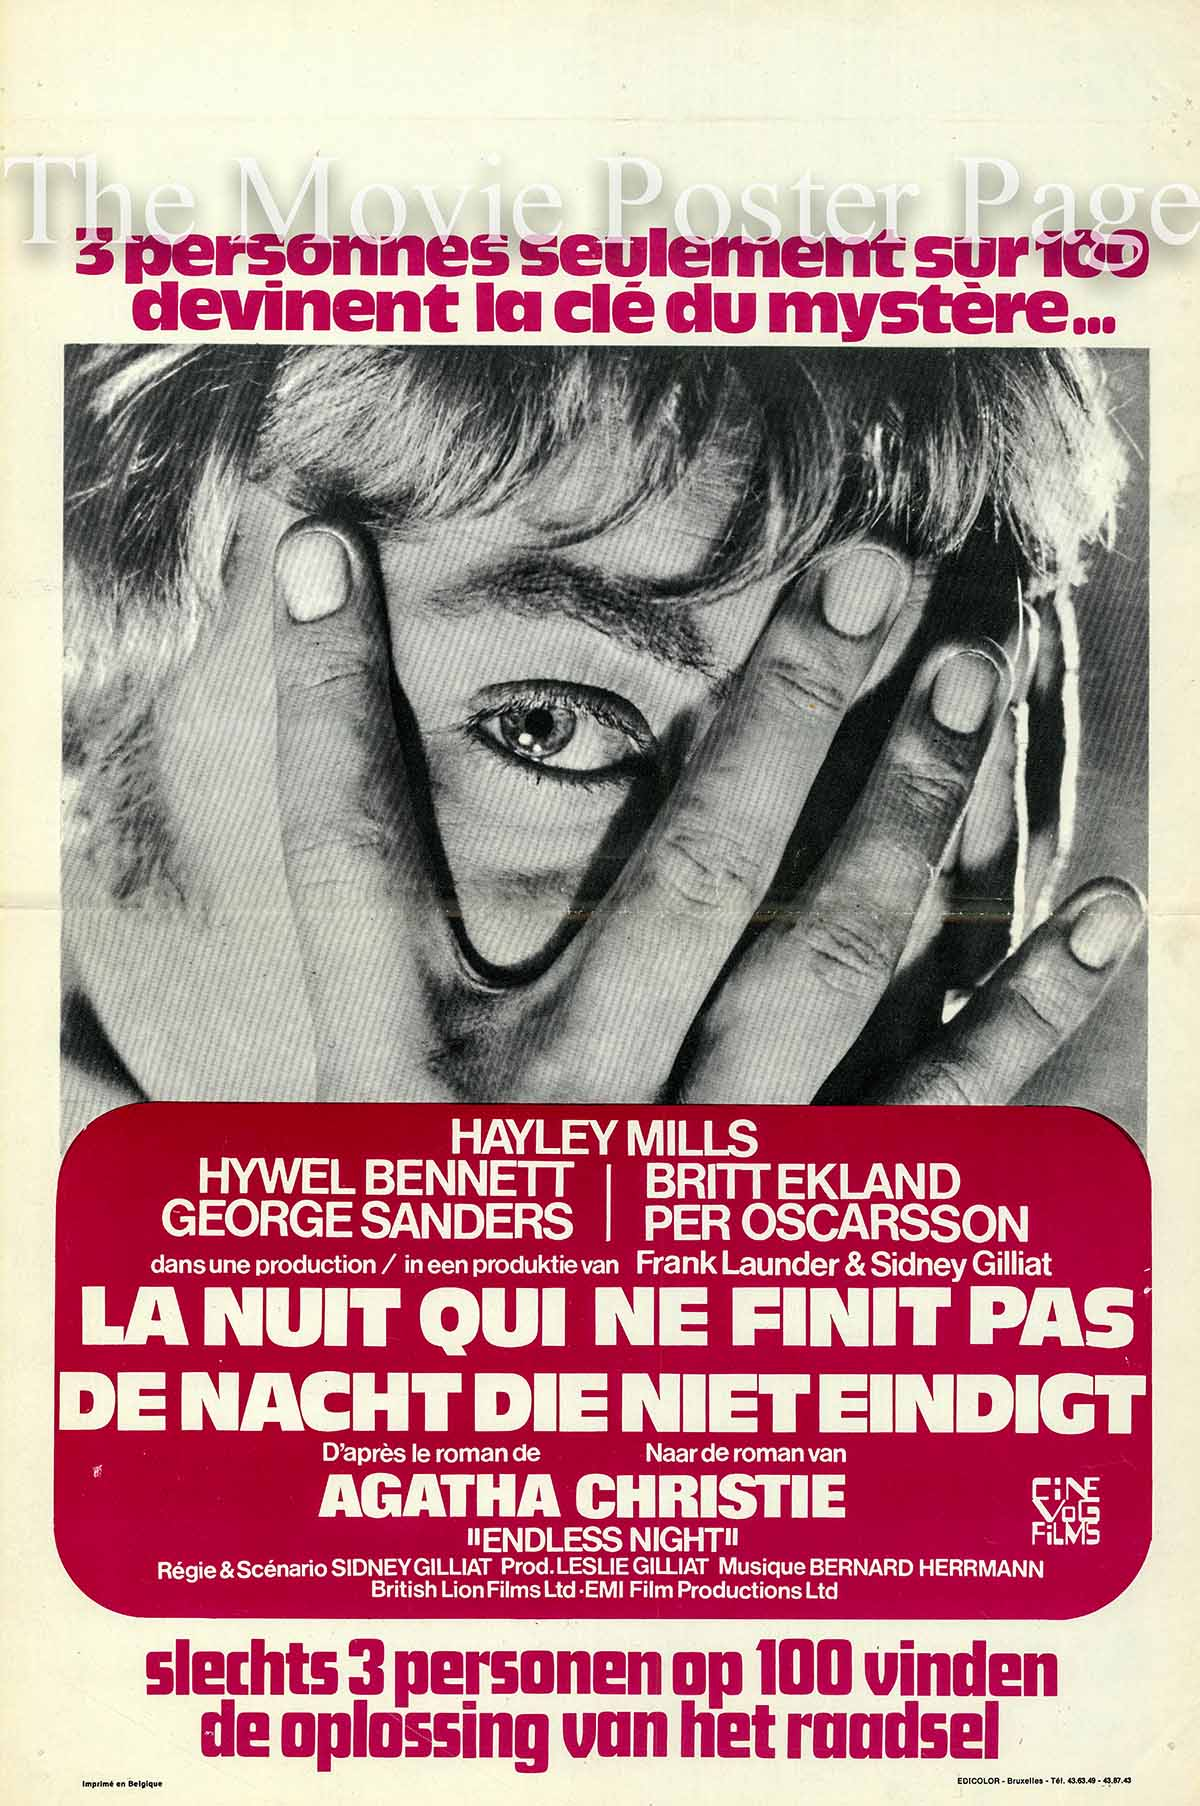 Pictured is a Belgian promotional poster for the 1971 Sidney Gilliat film Endless Night starring Hayley Mills as Fenella 'Ellie' Thomsen.